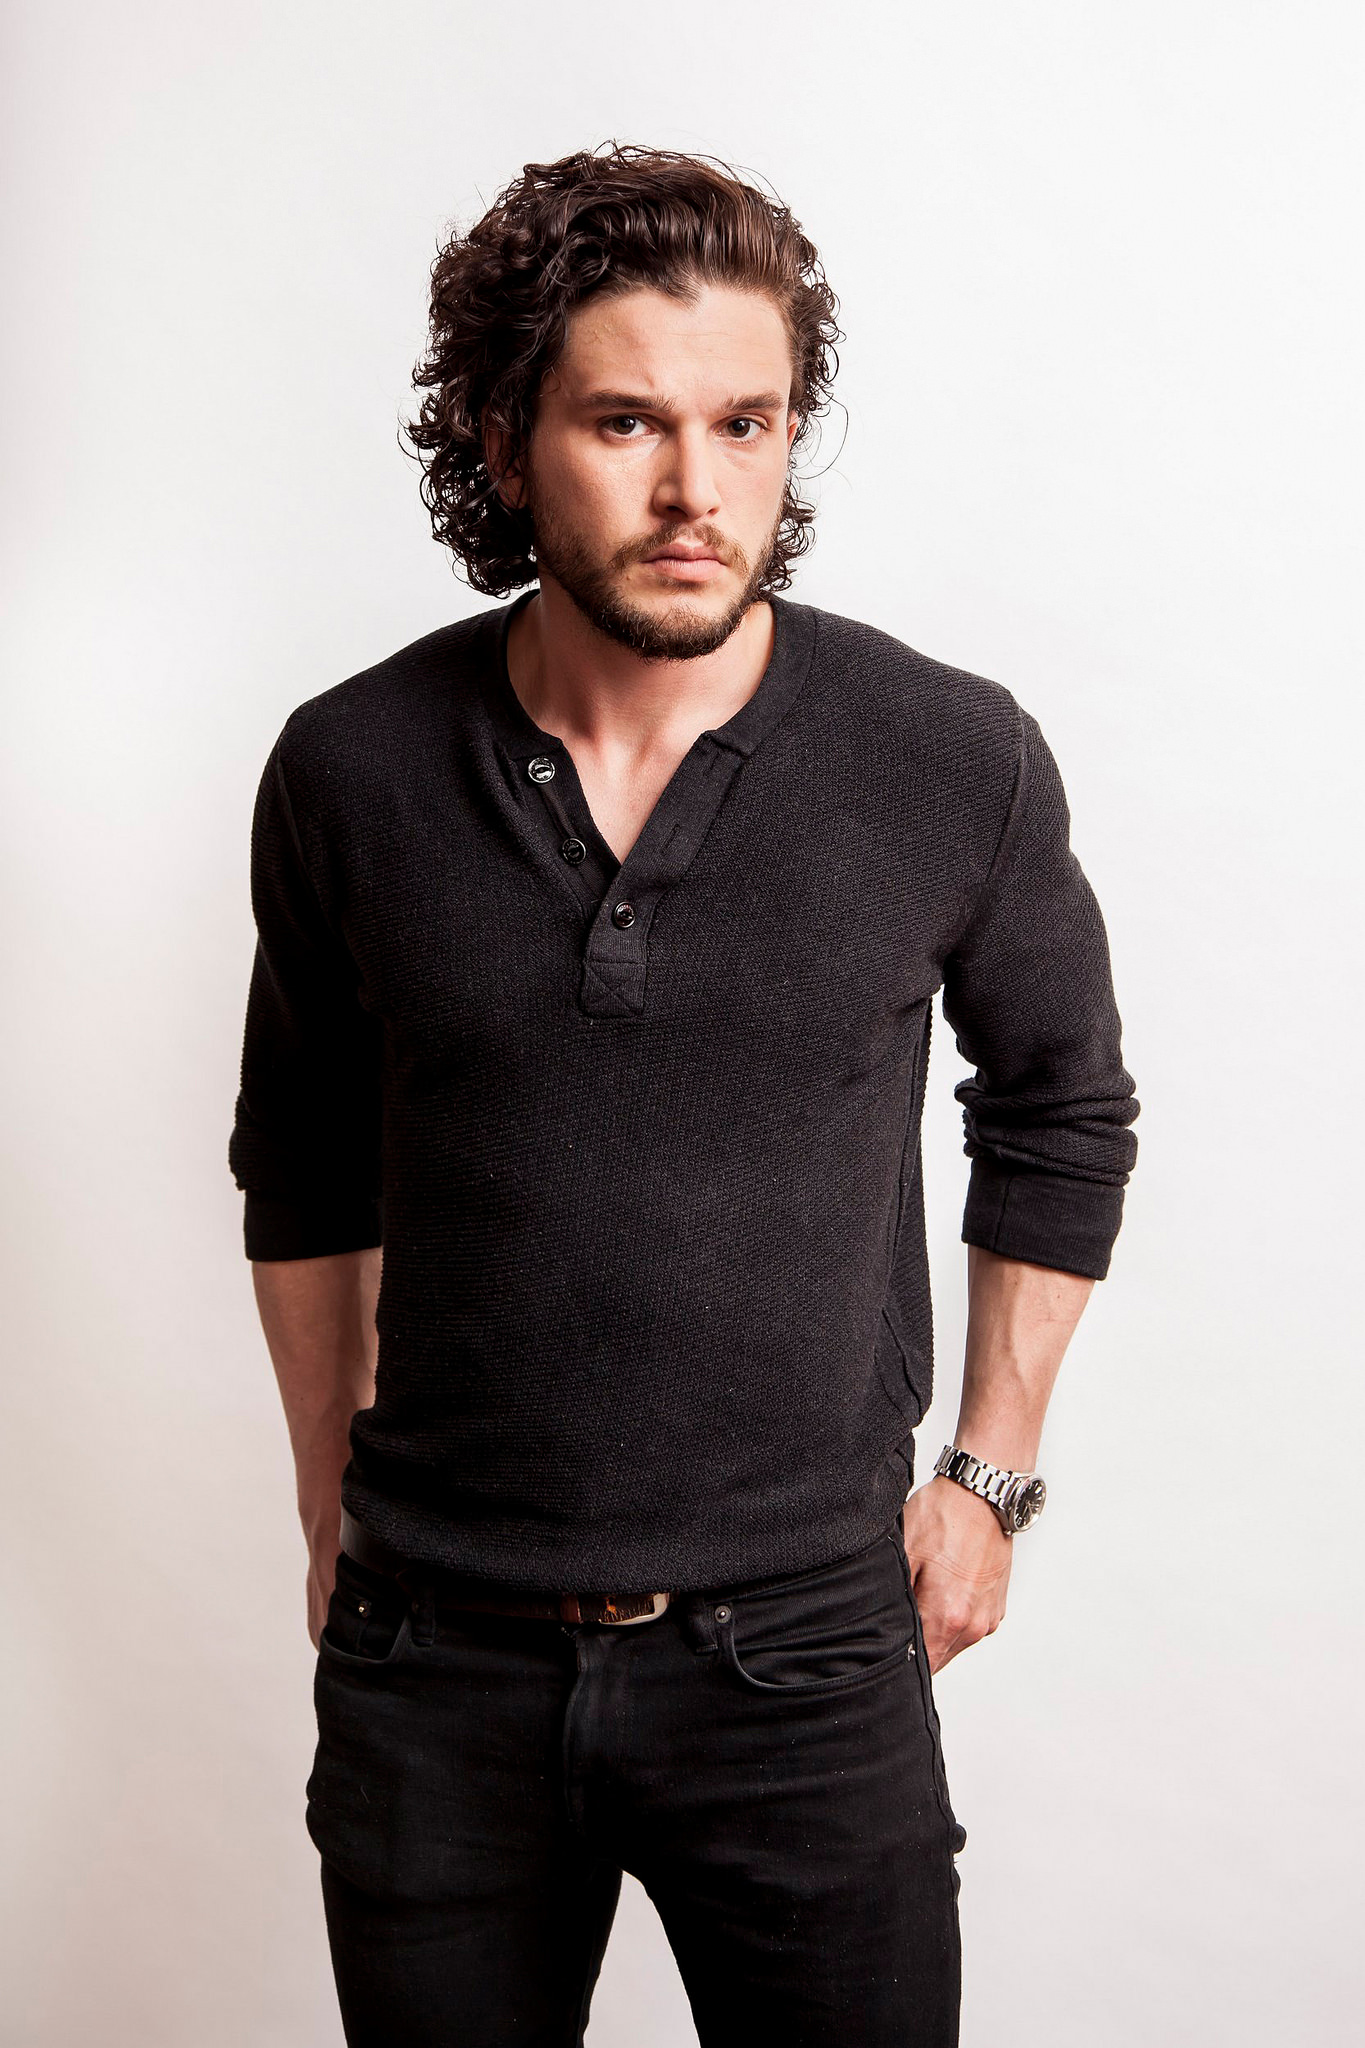 Kit Harington photo #711353